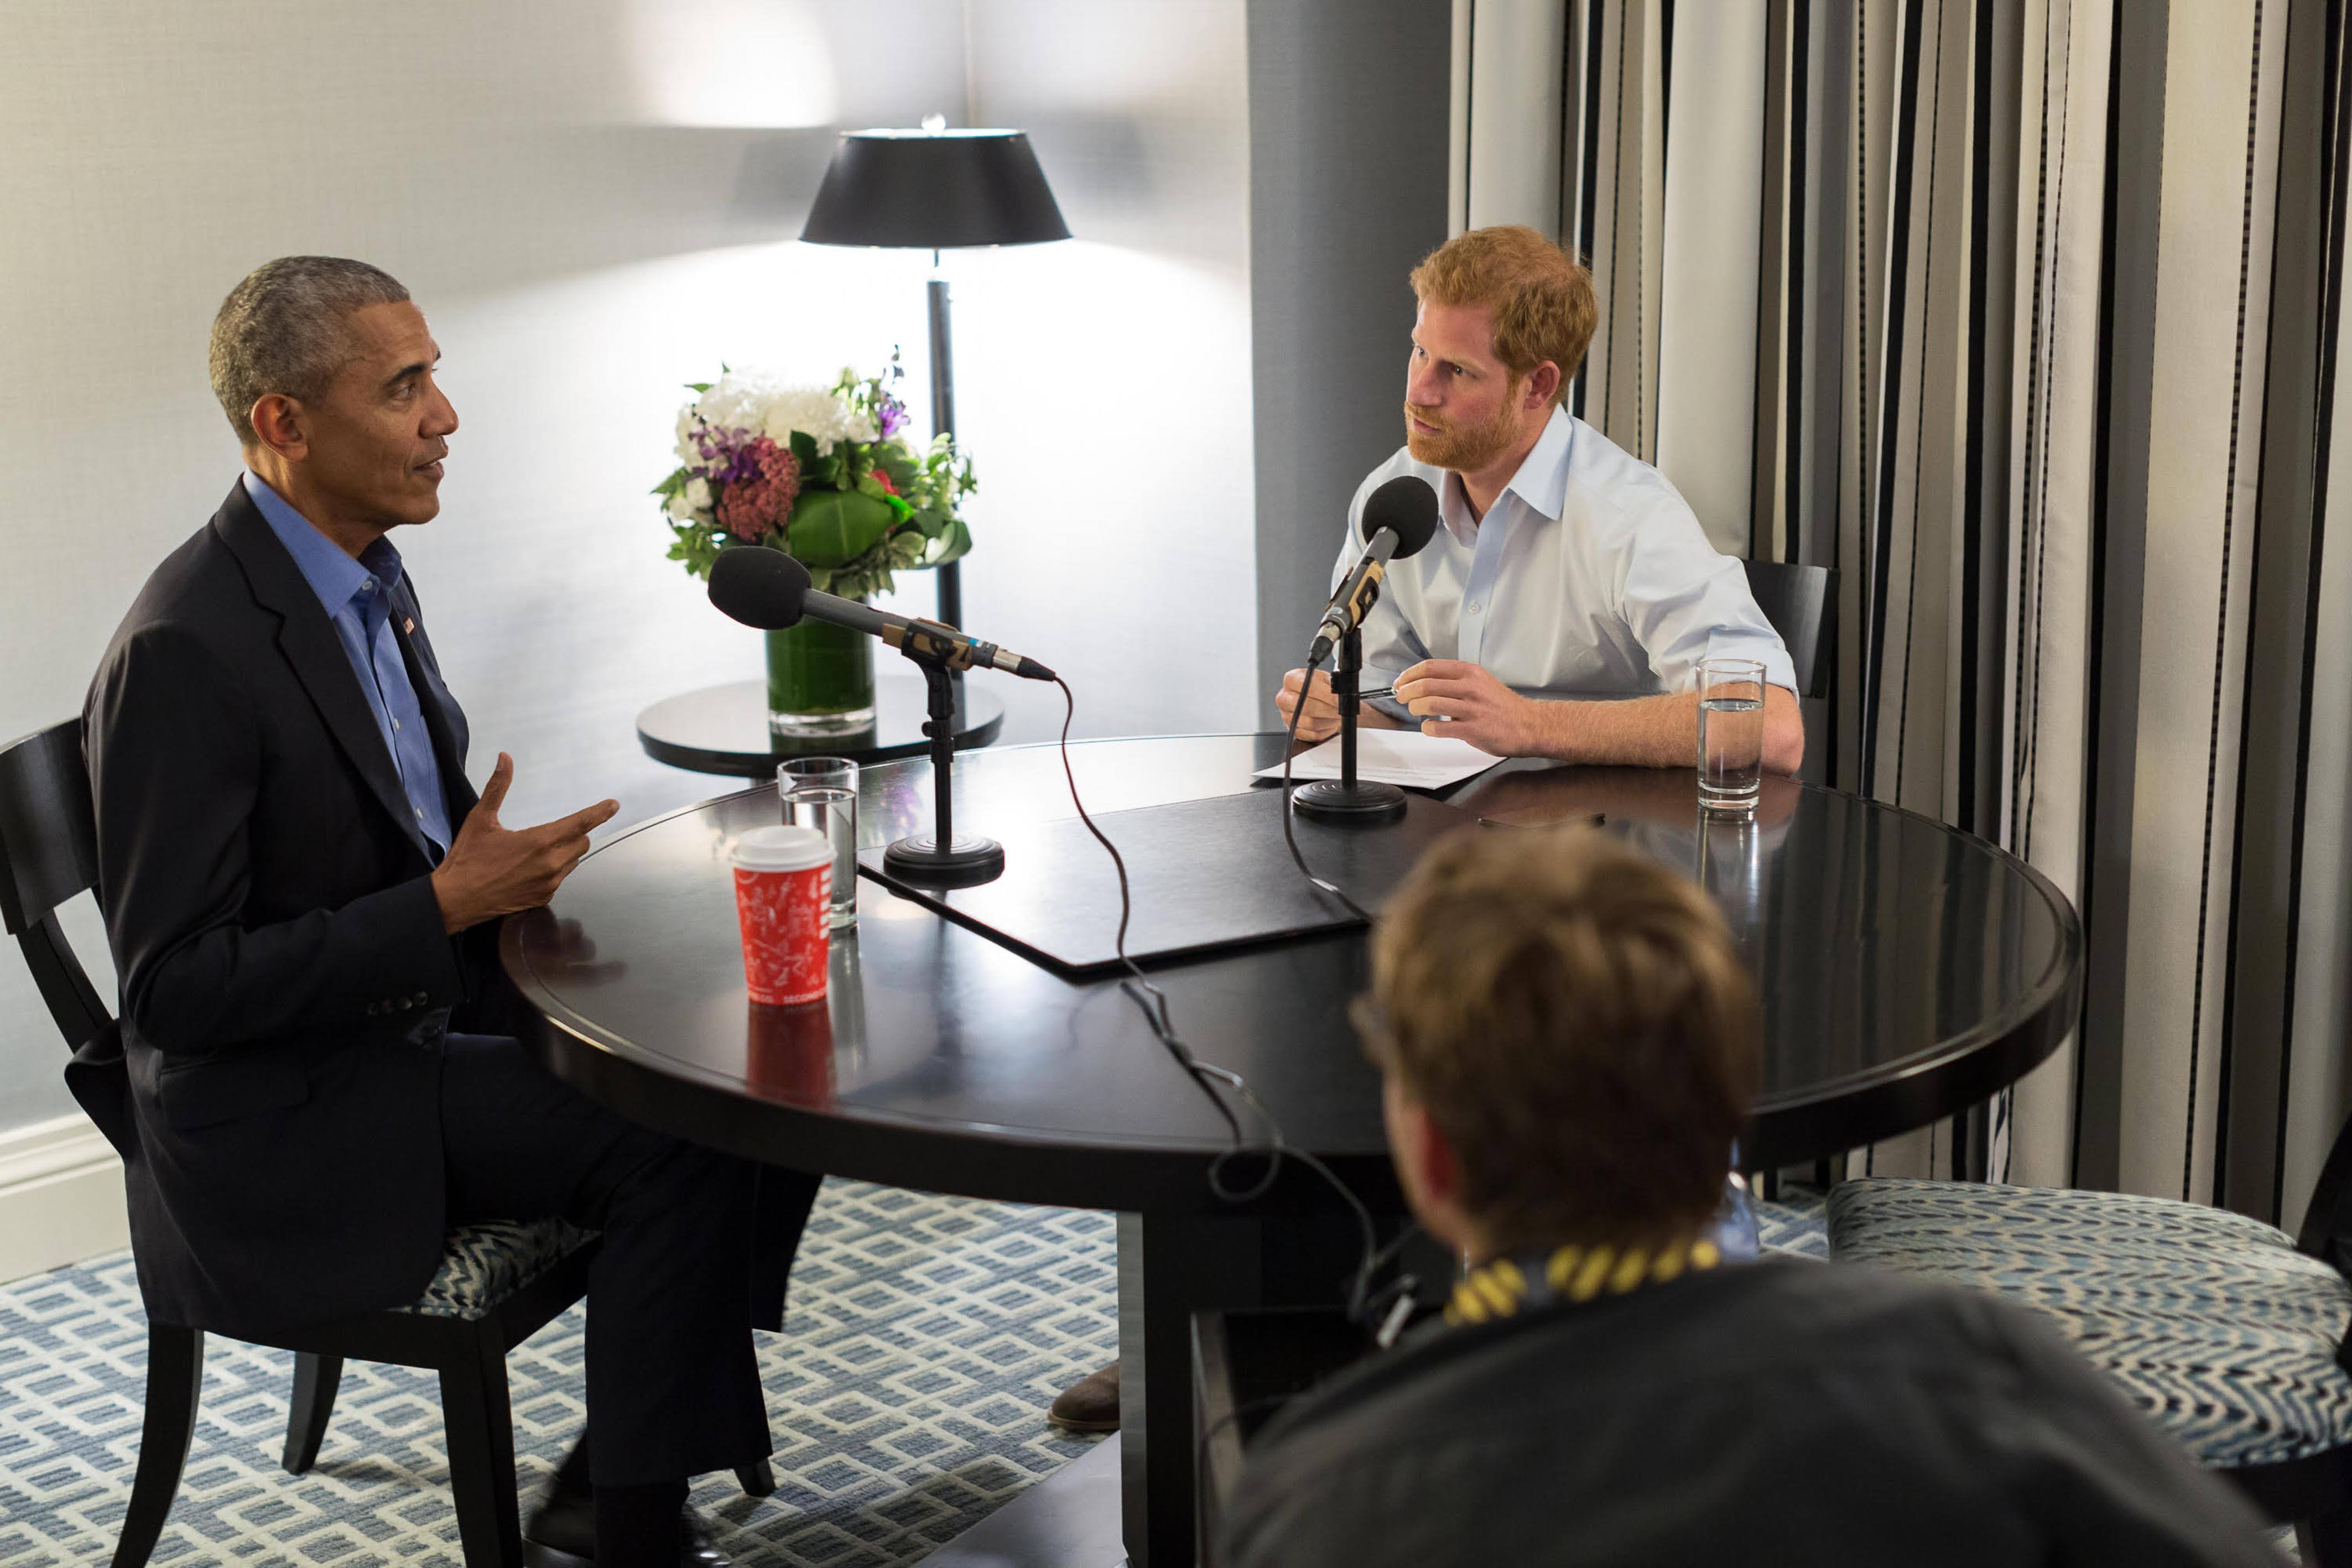 The 1 Thing Barack Obama Warned Prince Harry About